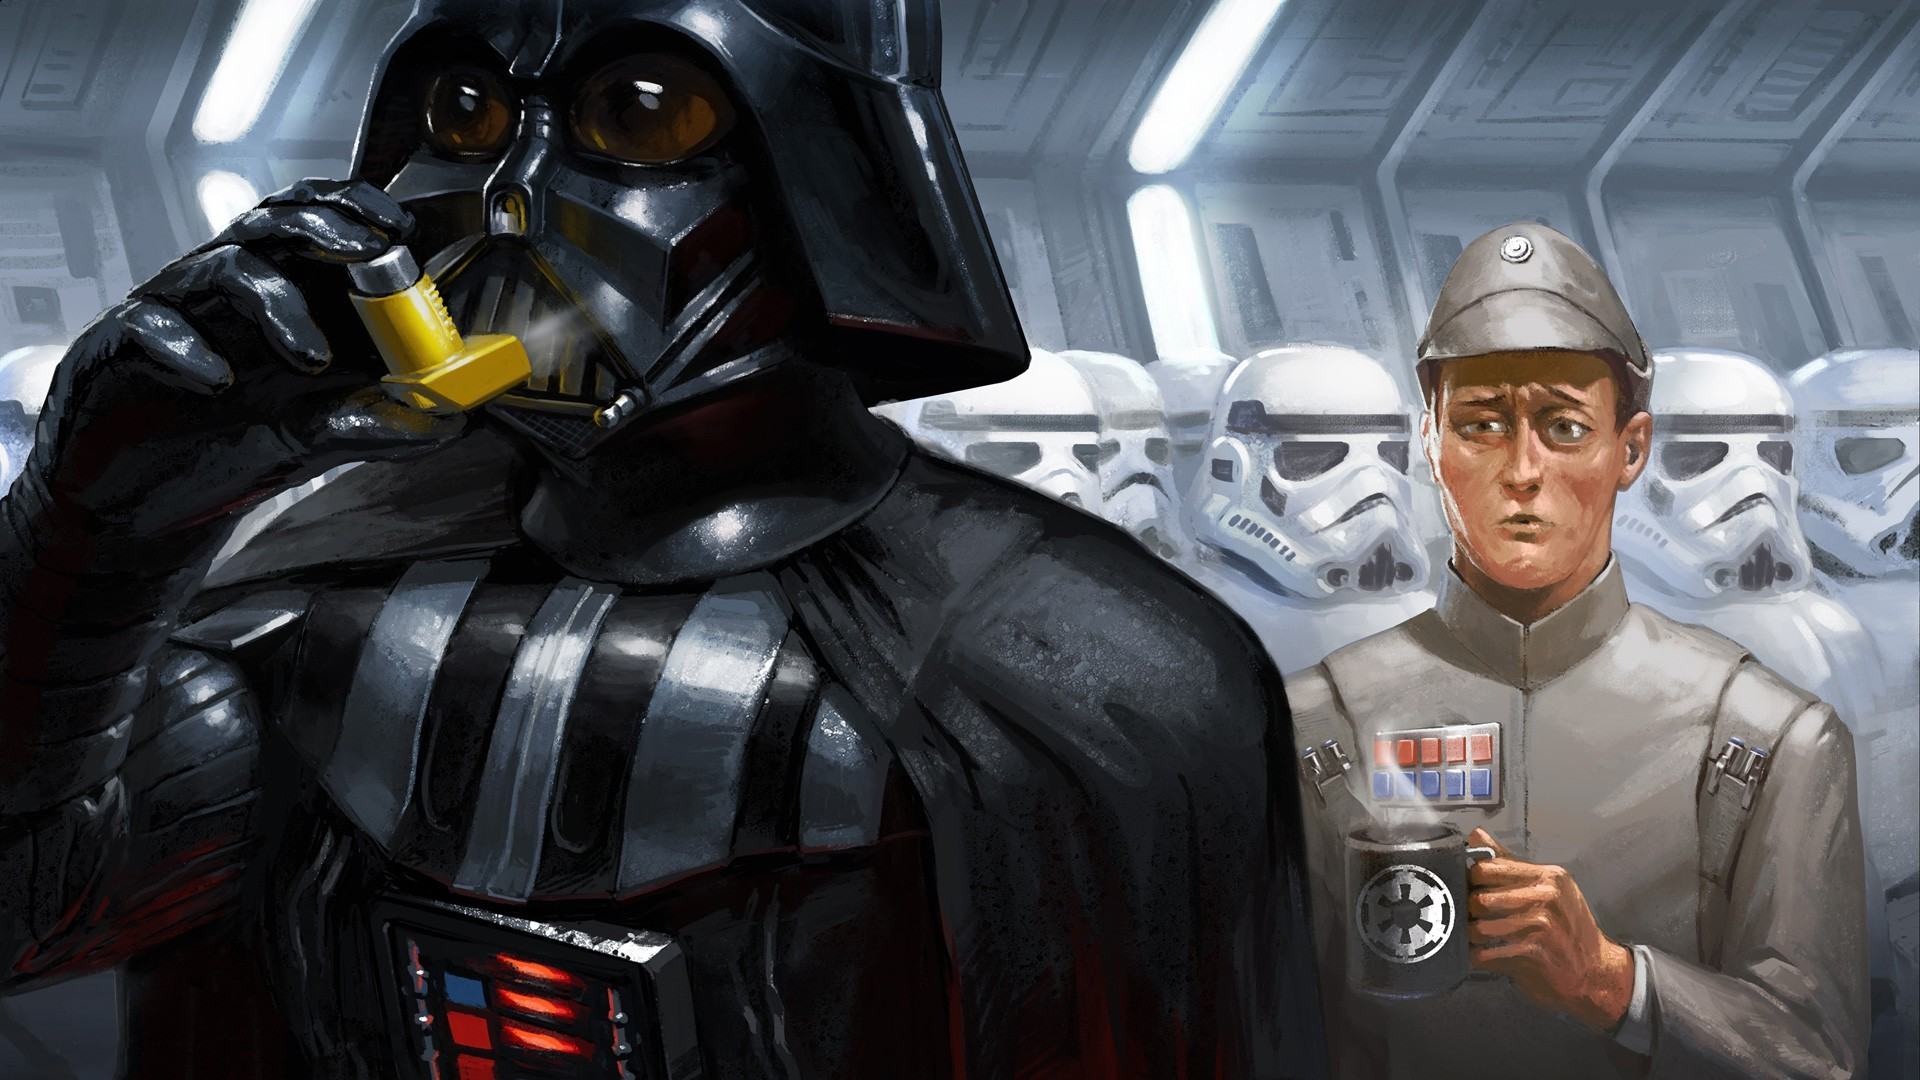 Darth vader wallpaper hd 1920x1080 download free - Star wars cool backgrounds ...